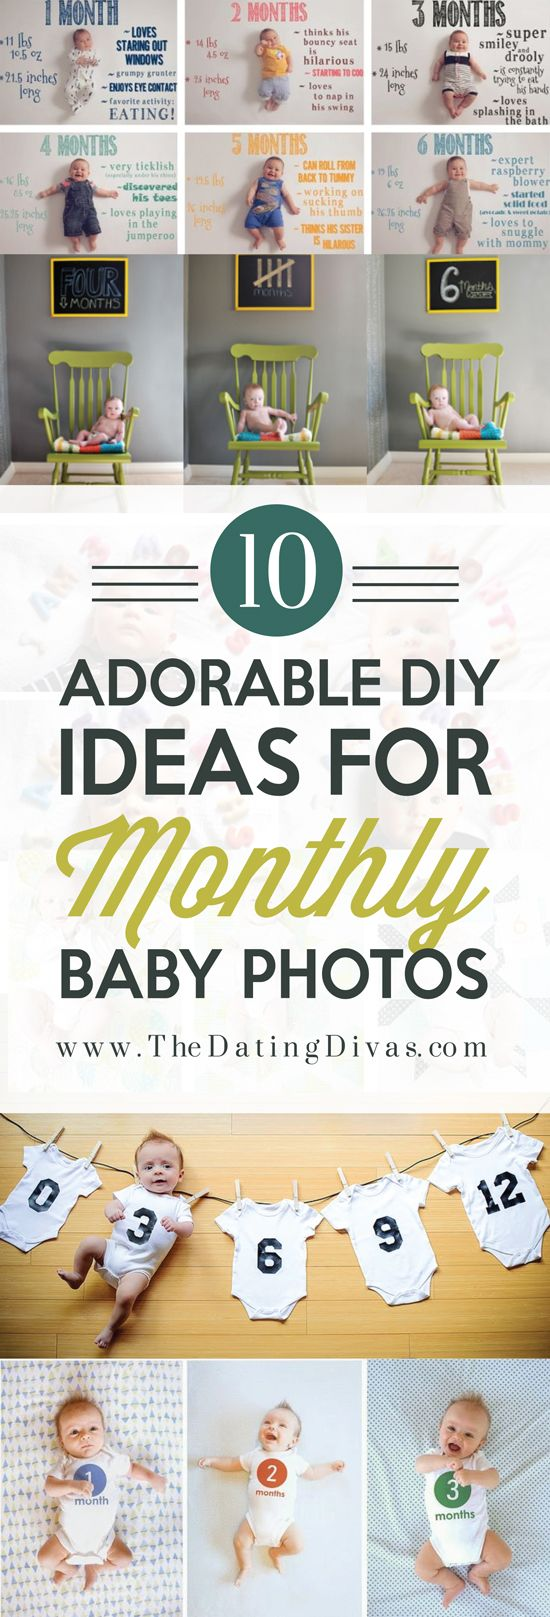 I LOVE these creative monthly baby pictures to document my newborn's growth! Such a great idea! Pinning for later! www.TheDatingDivas.com